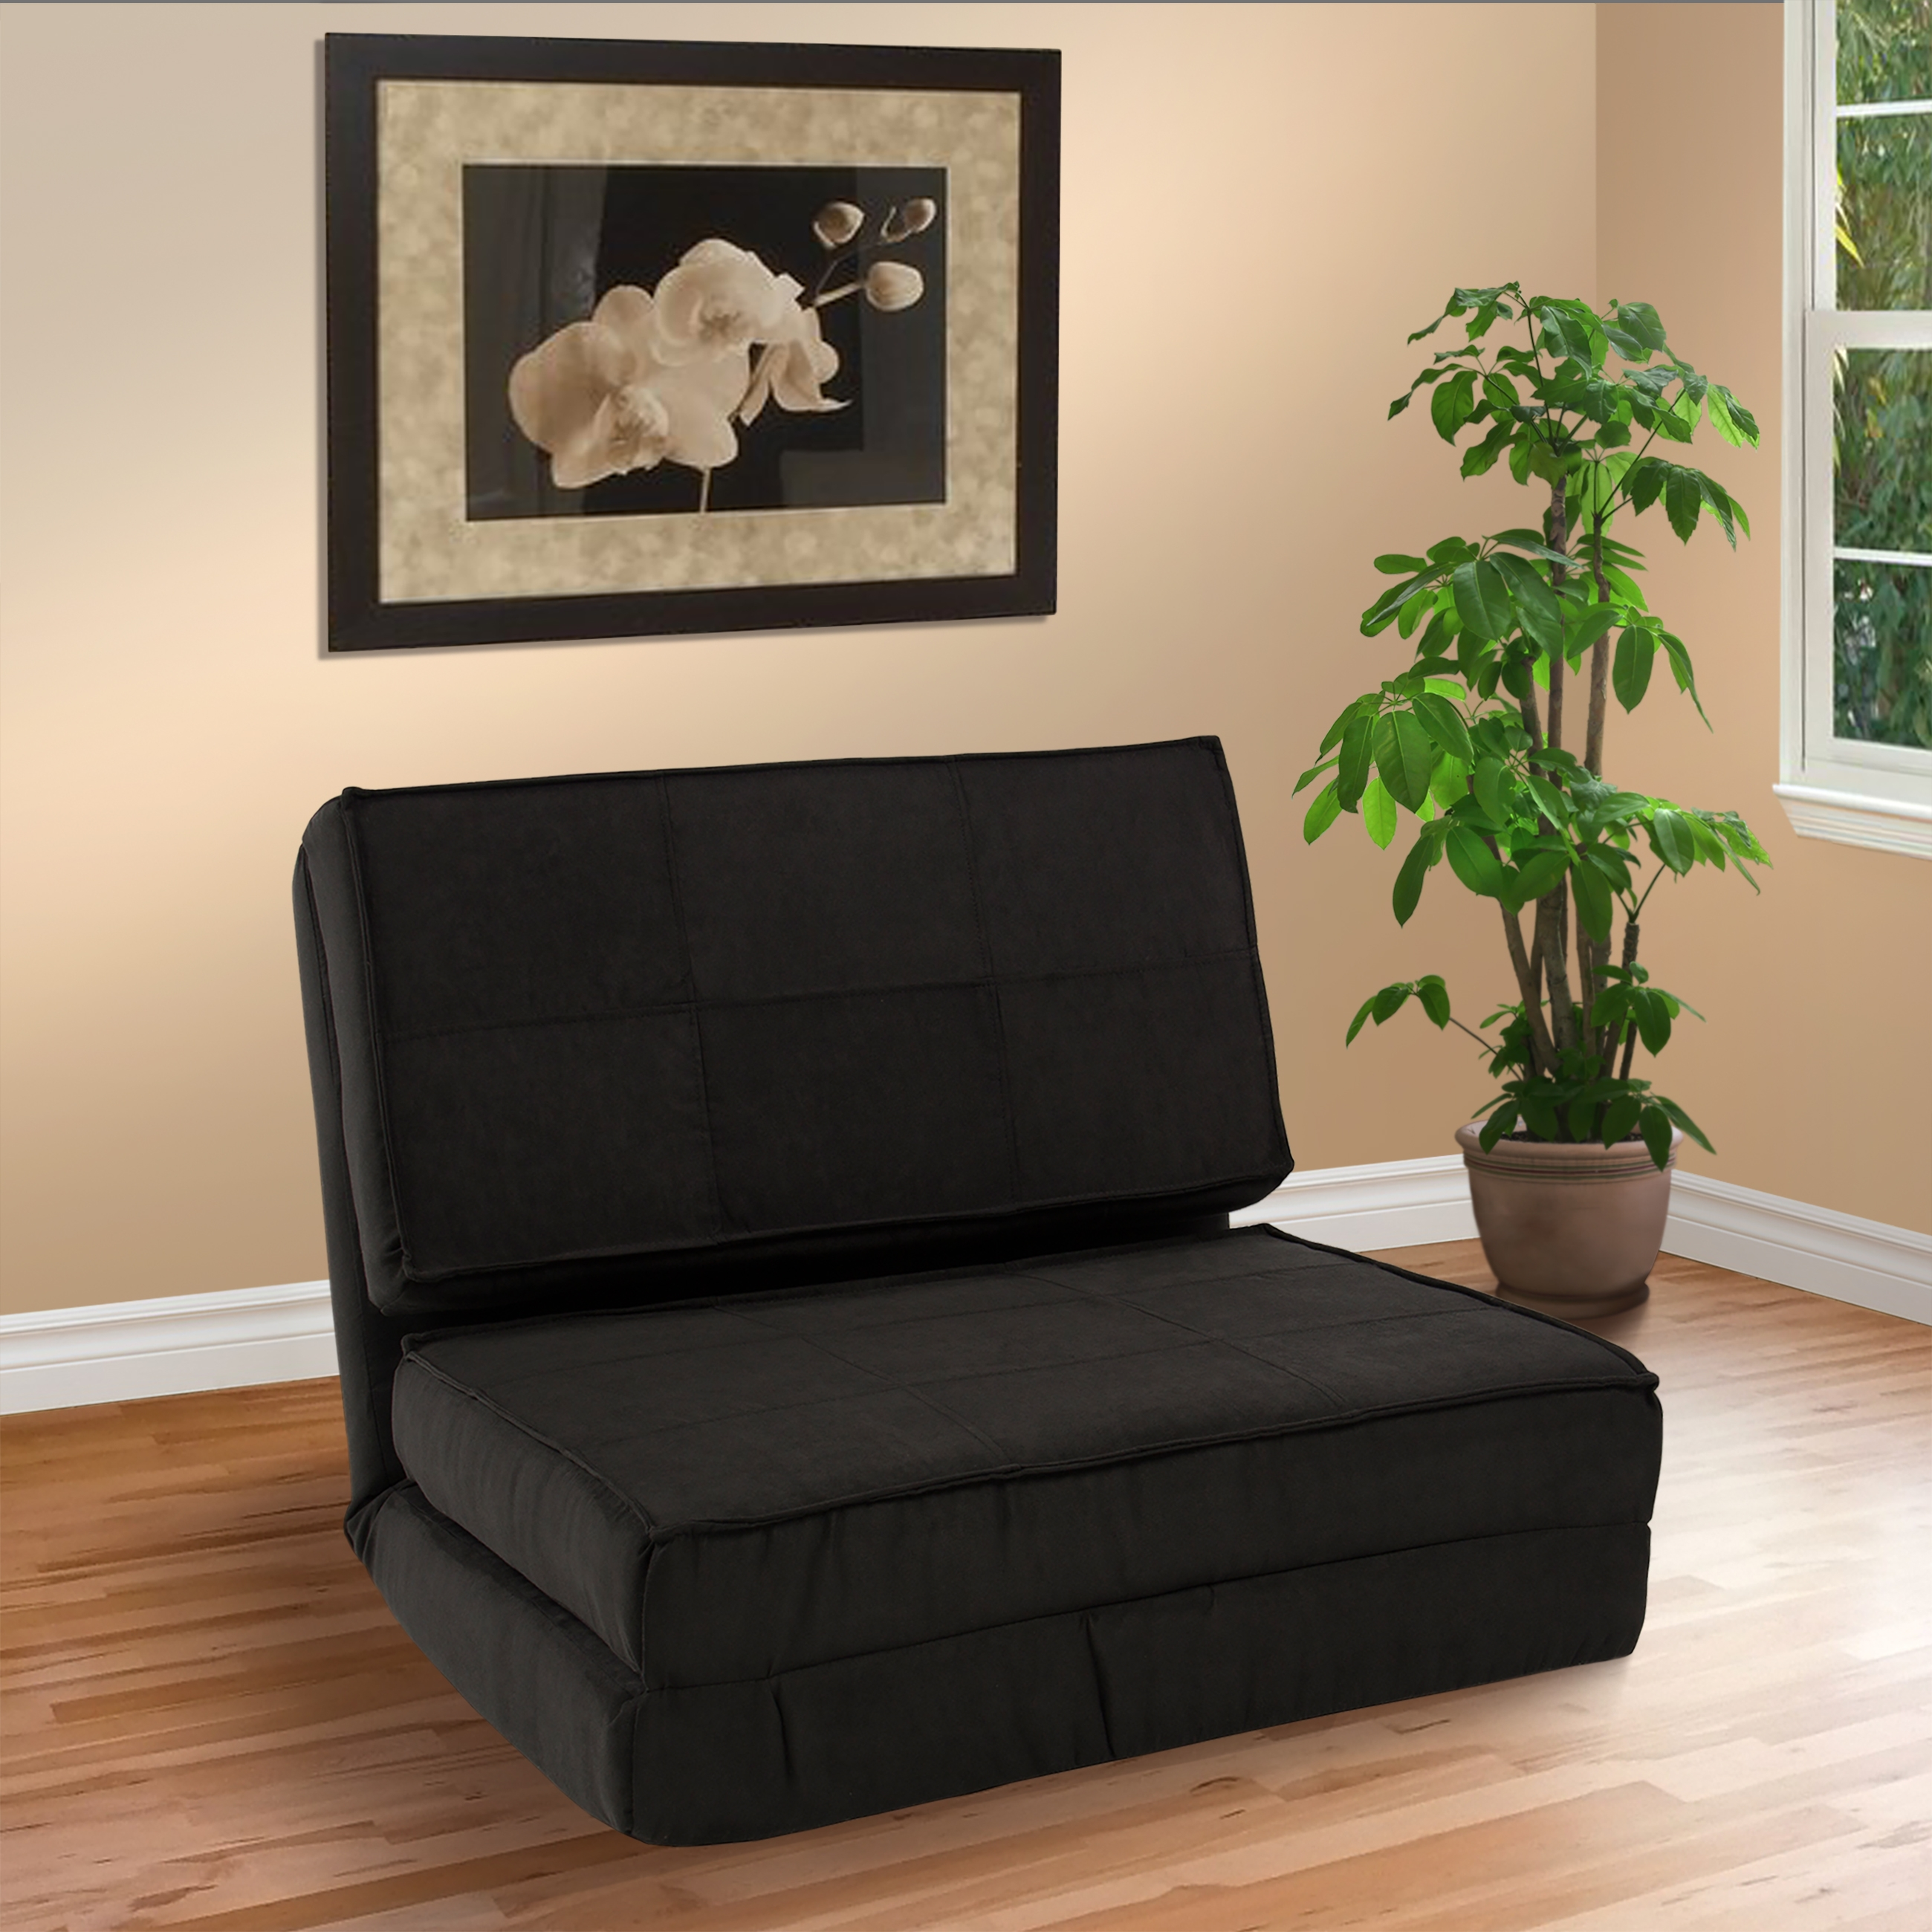 Fold Down Chair Flip Out Lounger Convertible Sleeper Bed Couch Intended For Folding Sofa Chairs (Image 5 of 15)